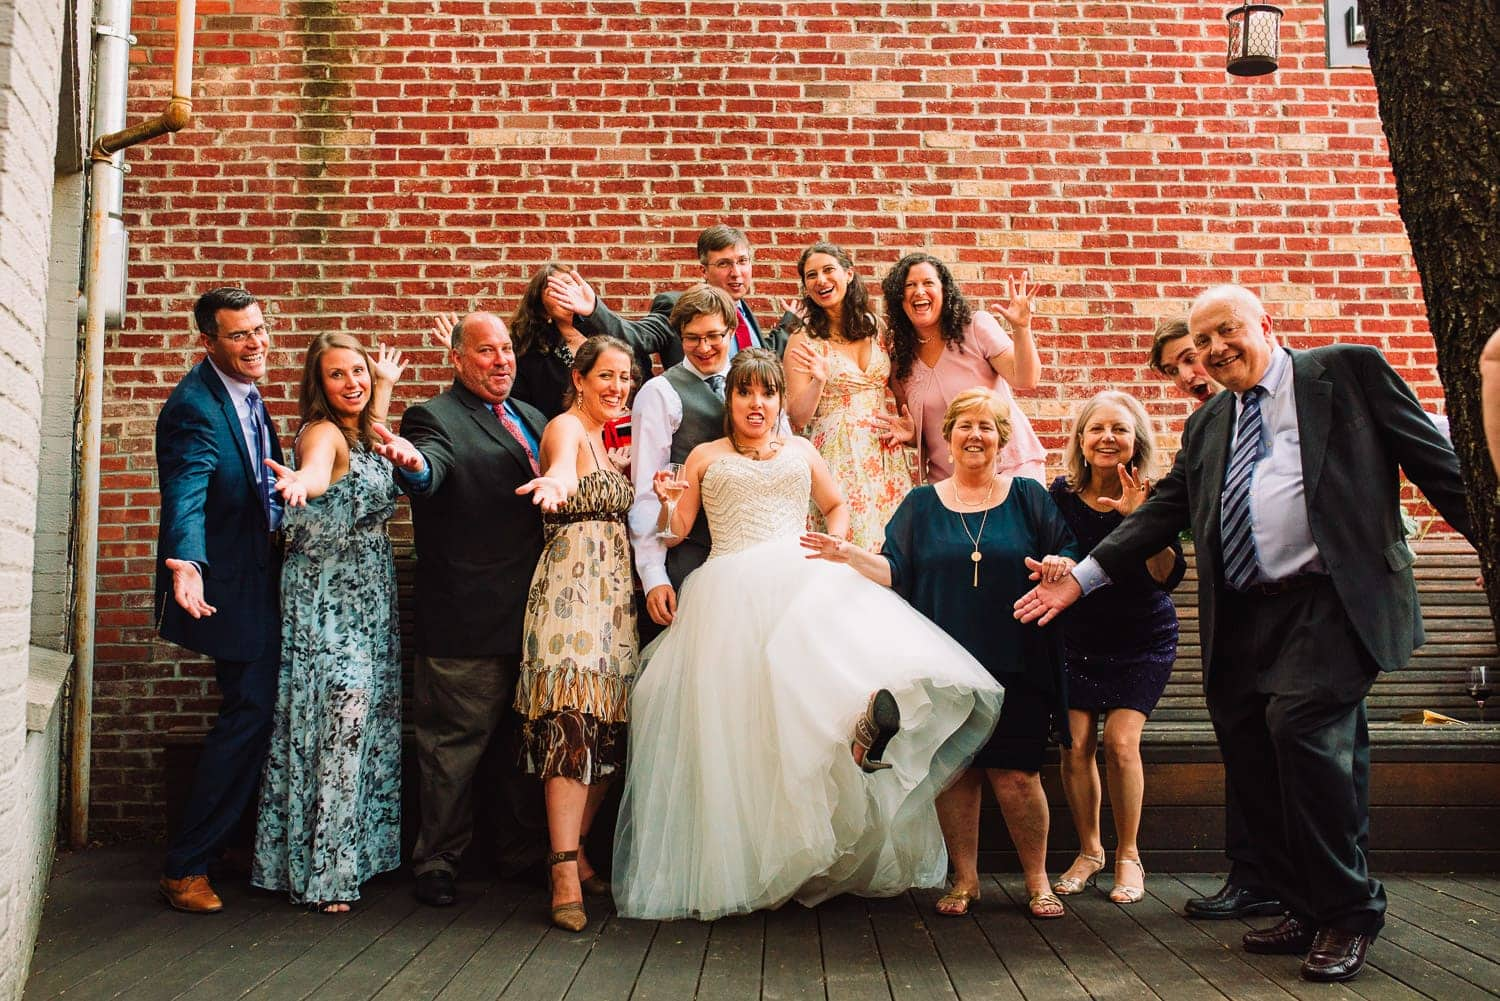 Bride, groom, and wedding guests acting silly for a picture